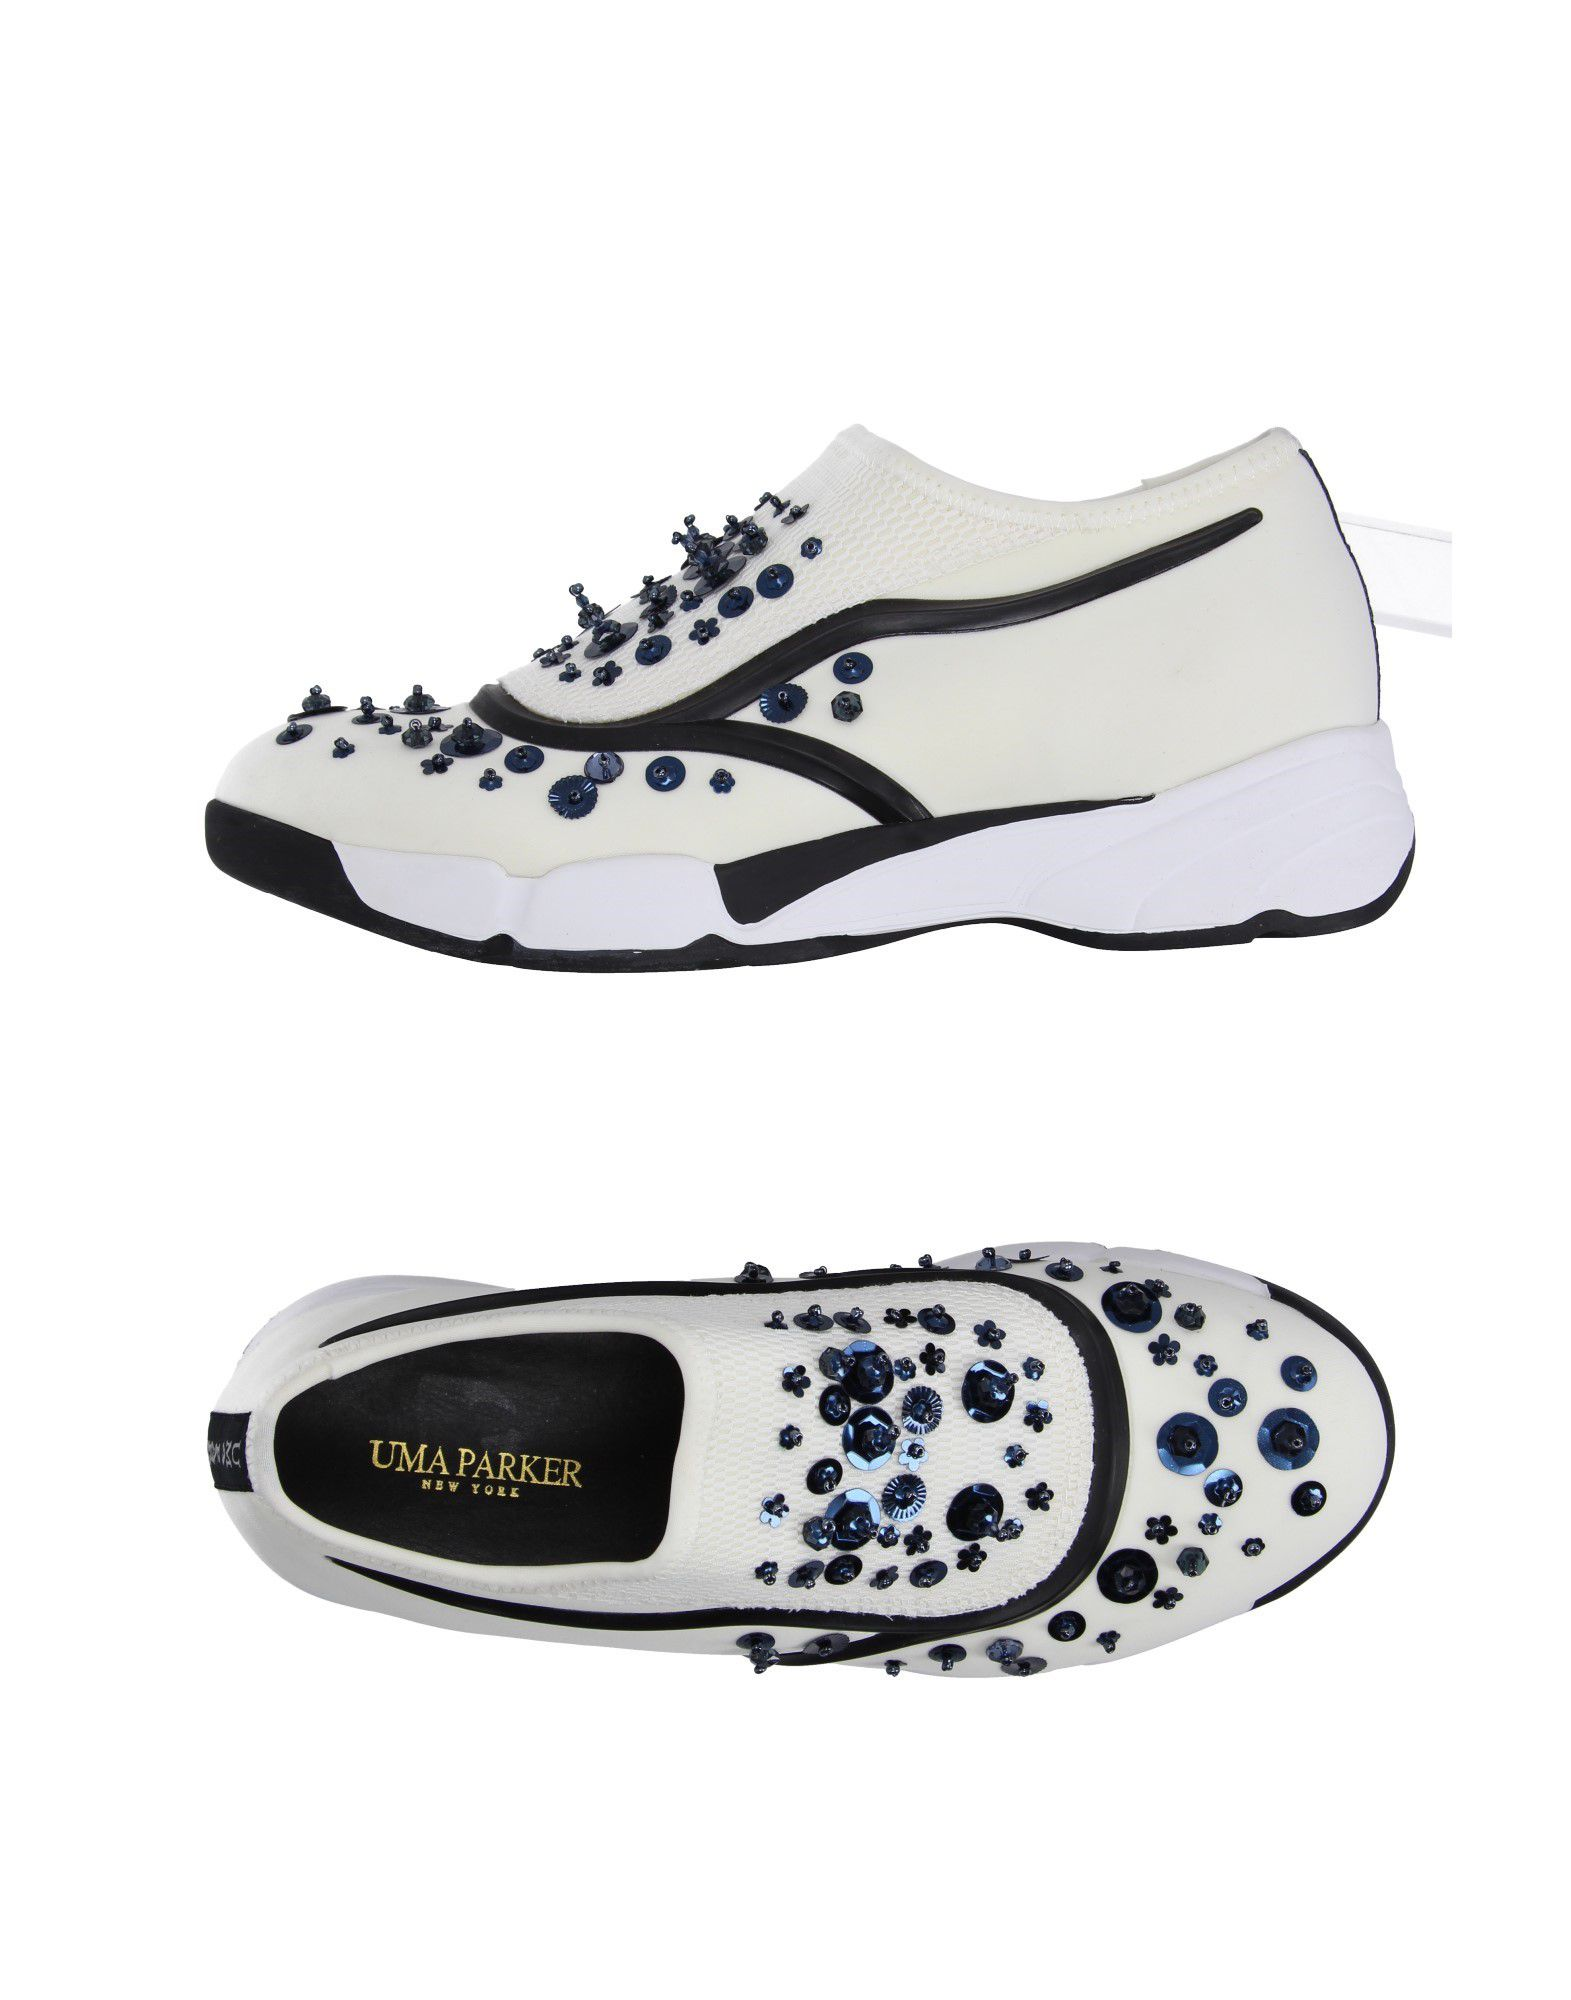 FOOTWEAR - Low-tops & sneakers Uma Parker New York zgfU4zZD2